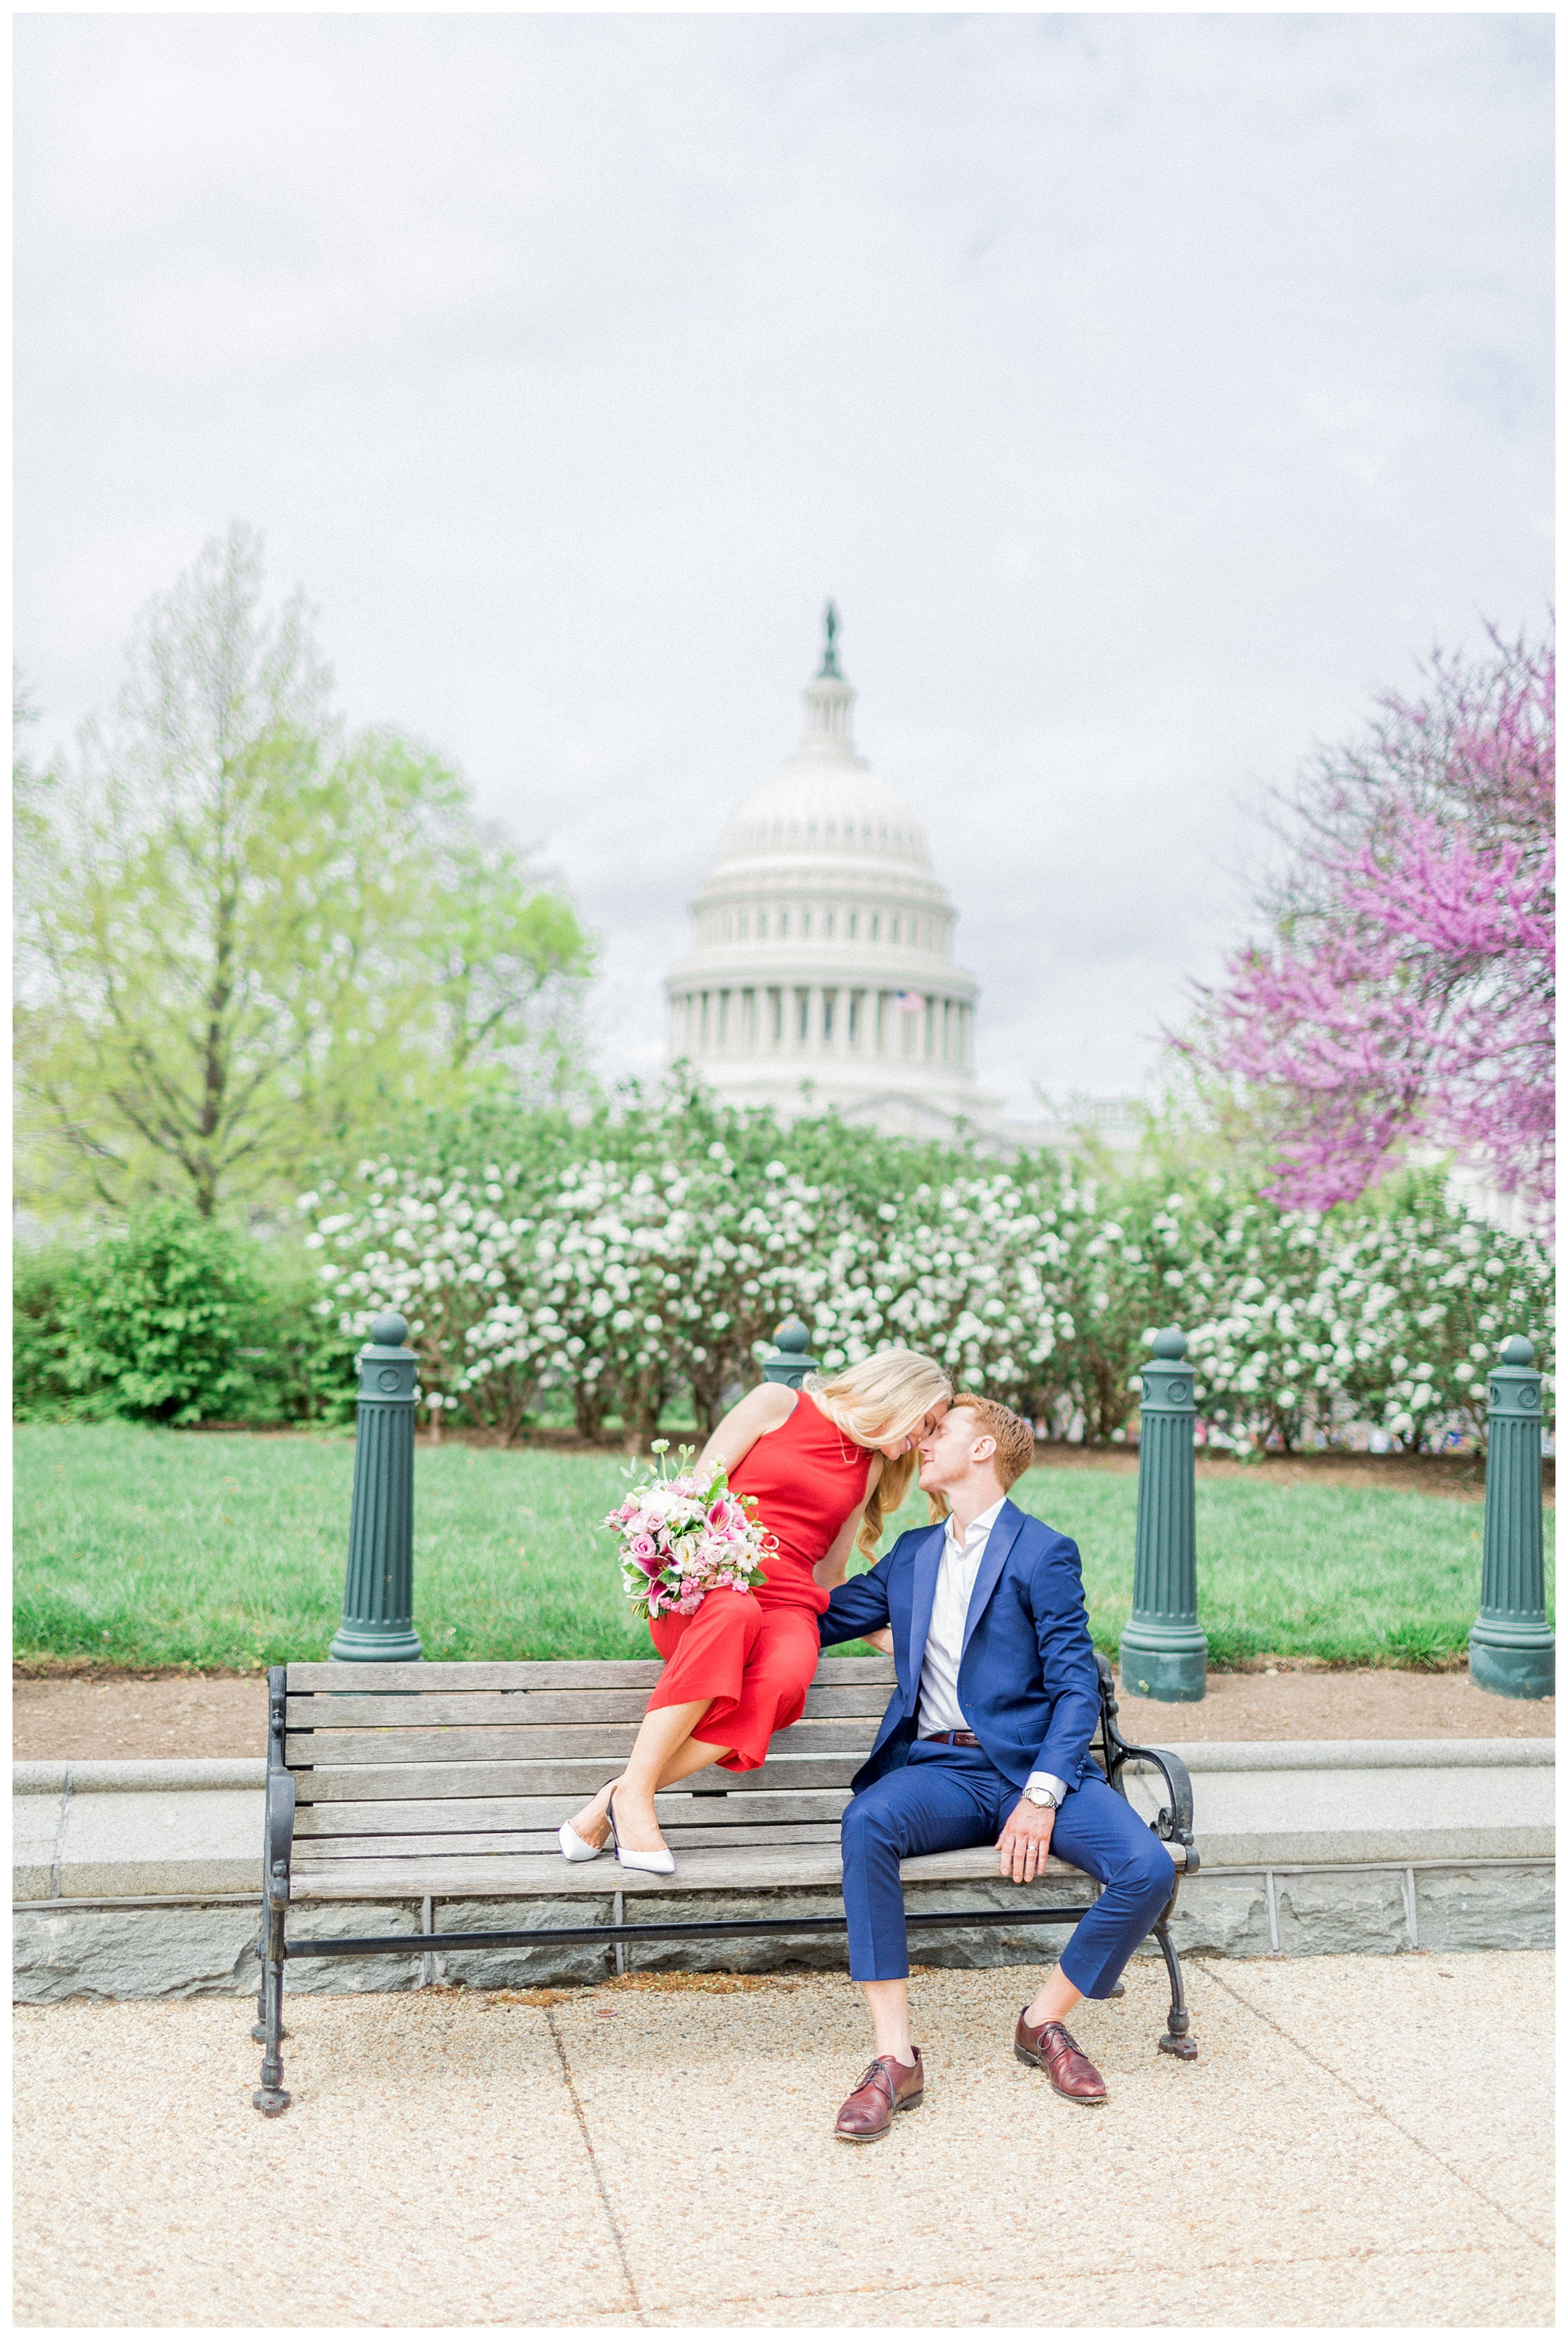 District of Columbia Elopement | Library of Congress Engagement Session Washington DC_0027.jpg